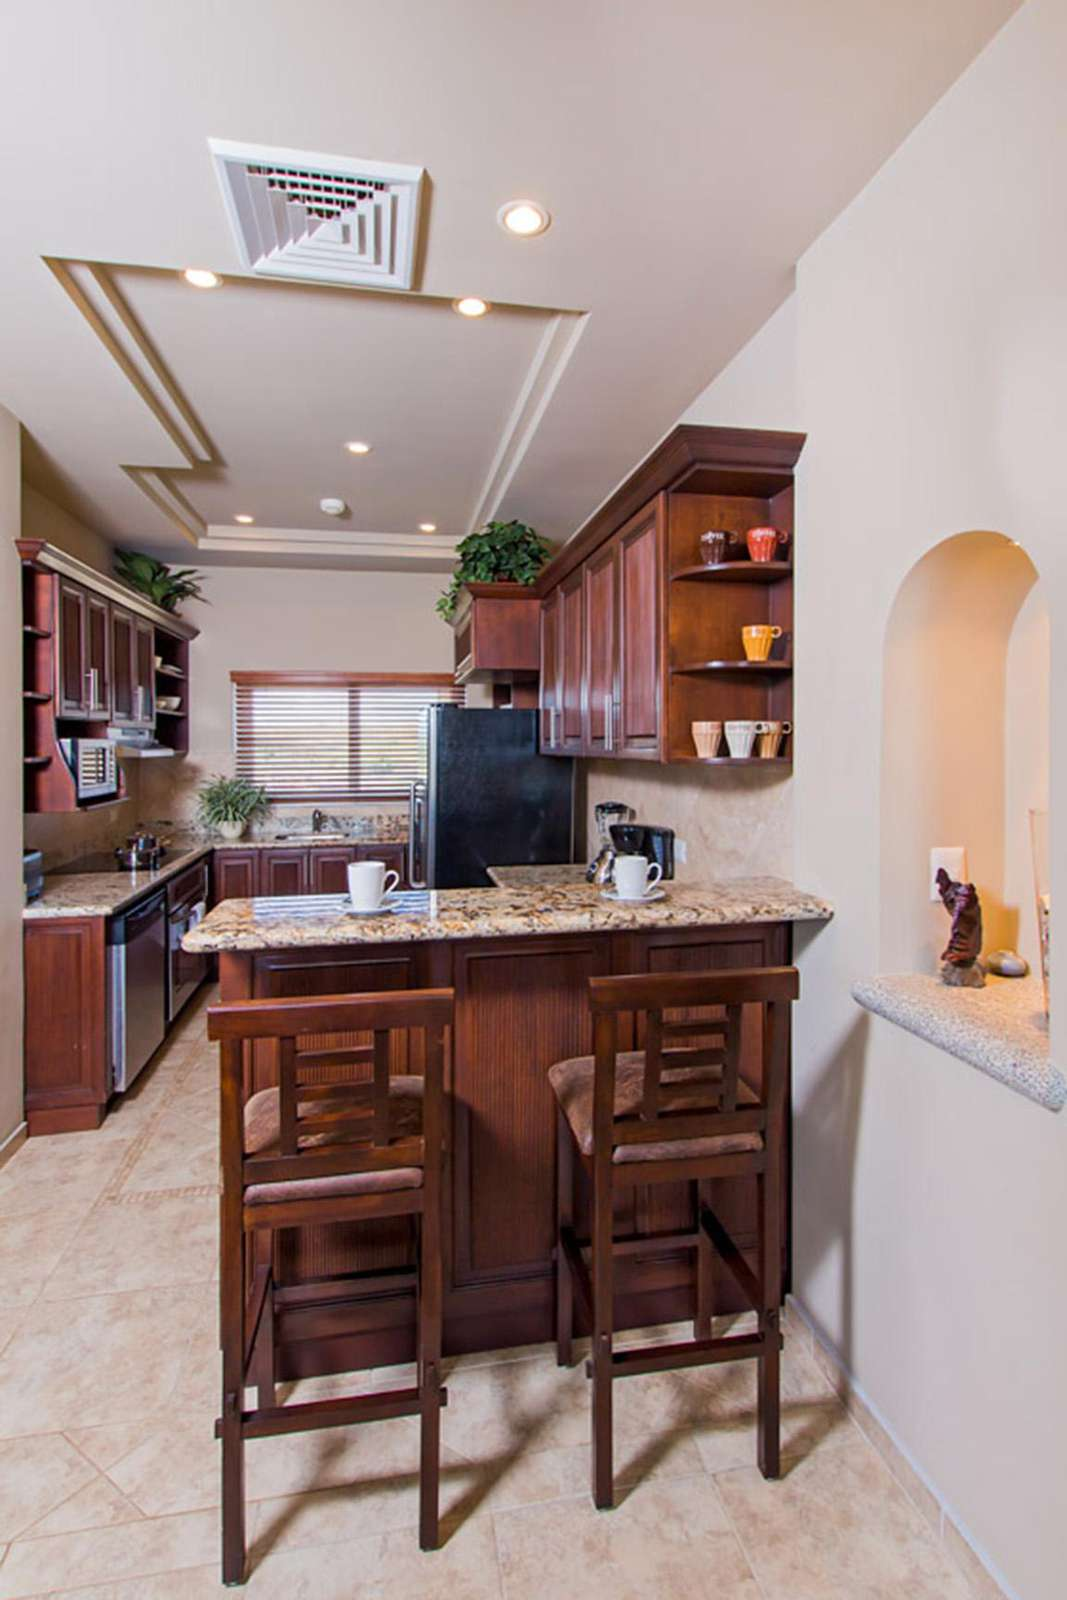 Another view of the kitchen and breakfast bar